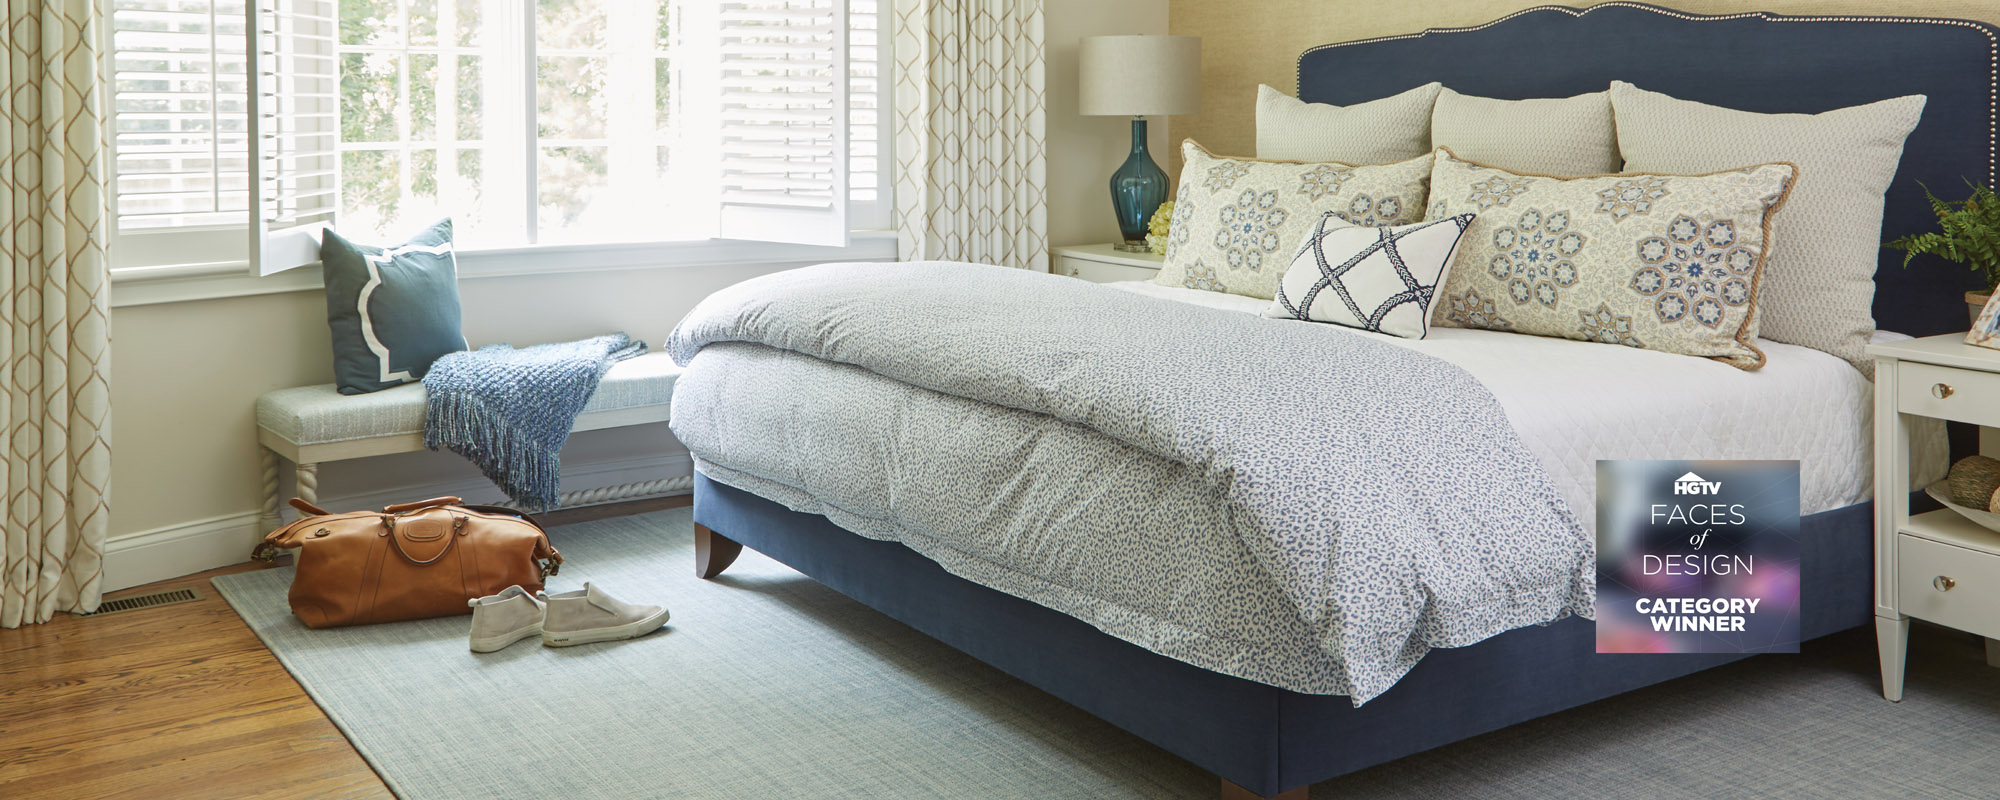 hgtv-prince tide-bed